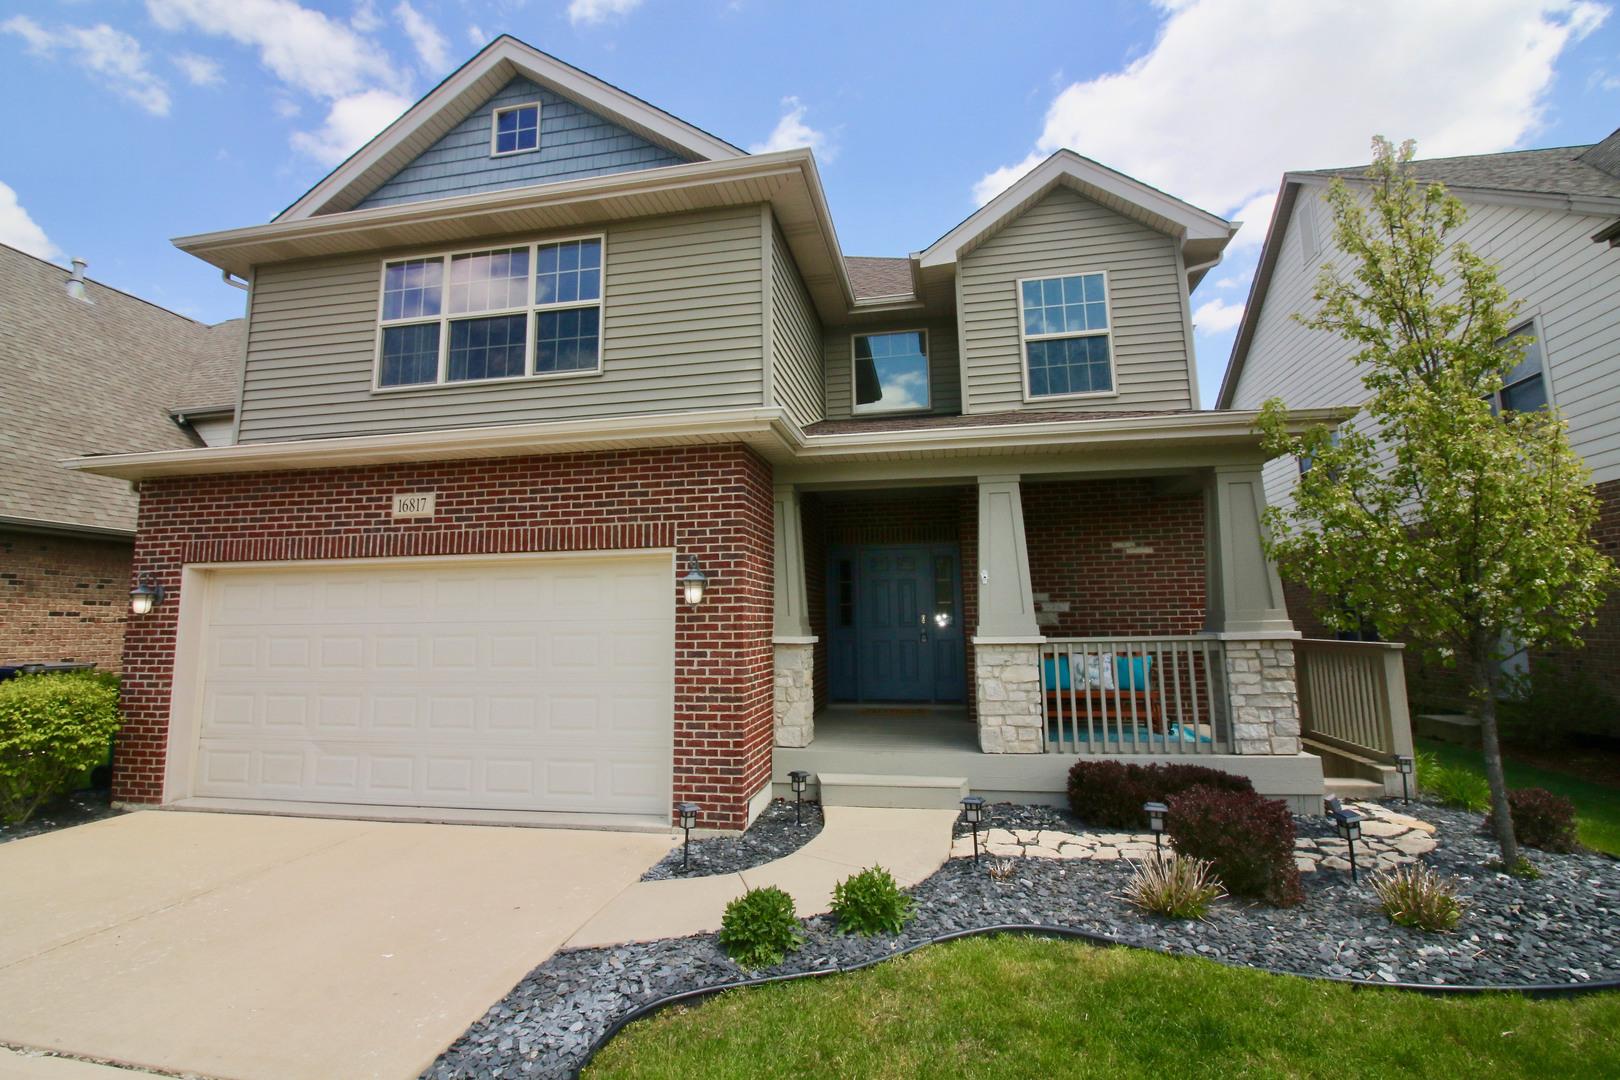 16817 Sheridans Trail, Orland Park, Illinois